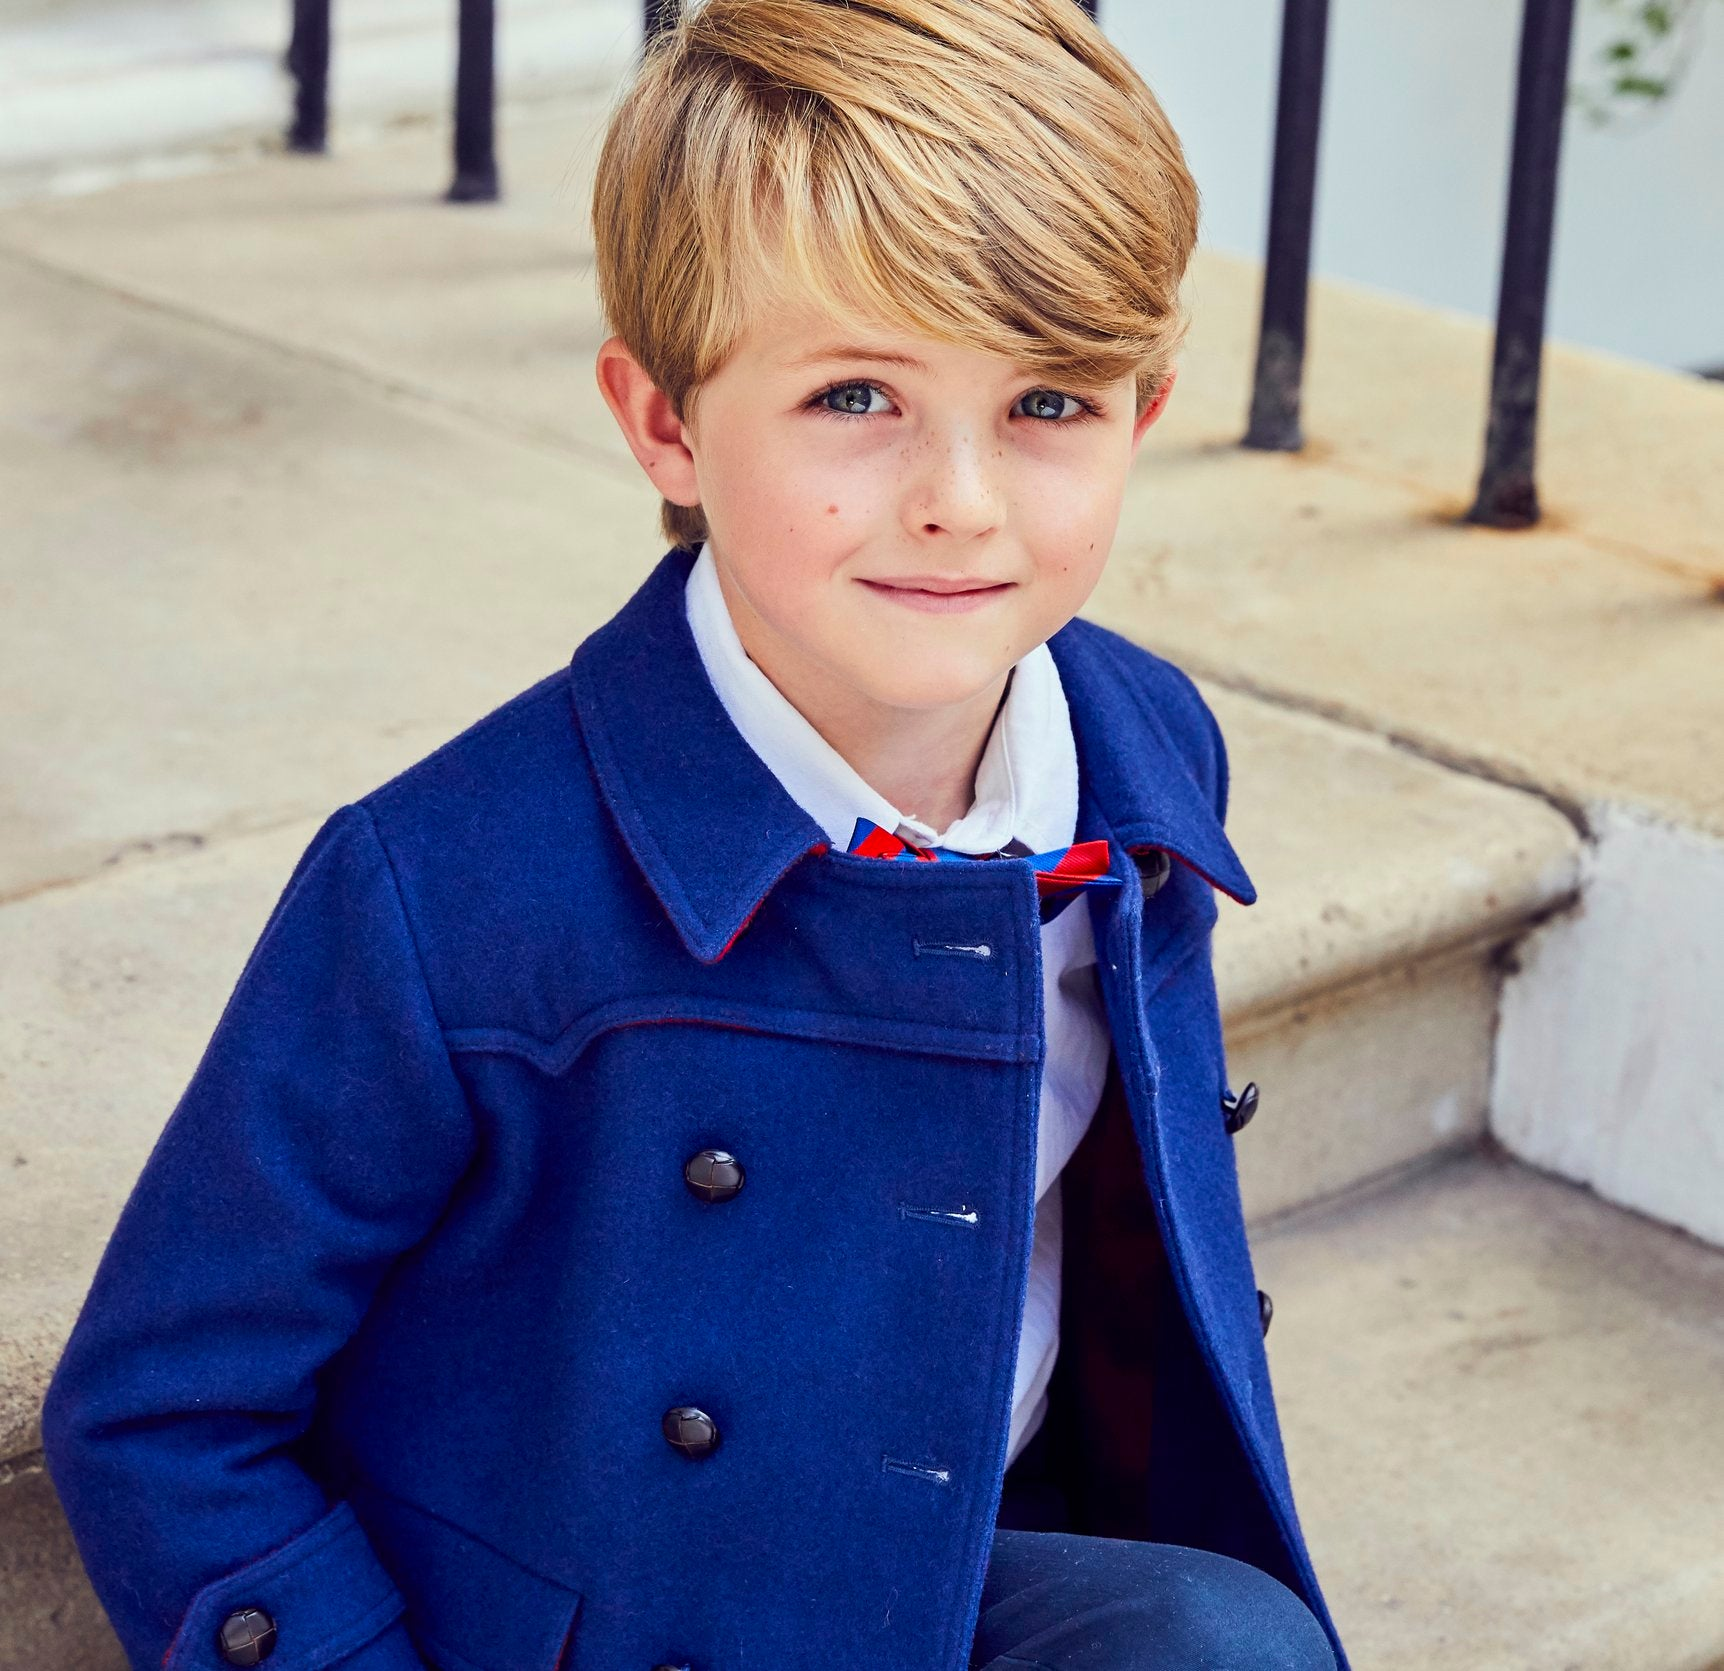 Britannical luxury childrens coats girls coats luxury kids coats luxury children's clothing made in britain